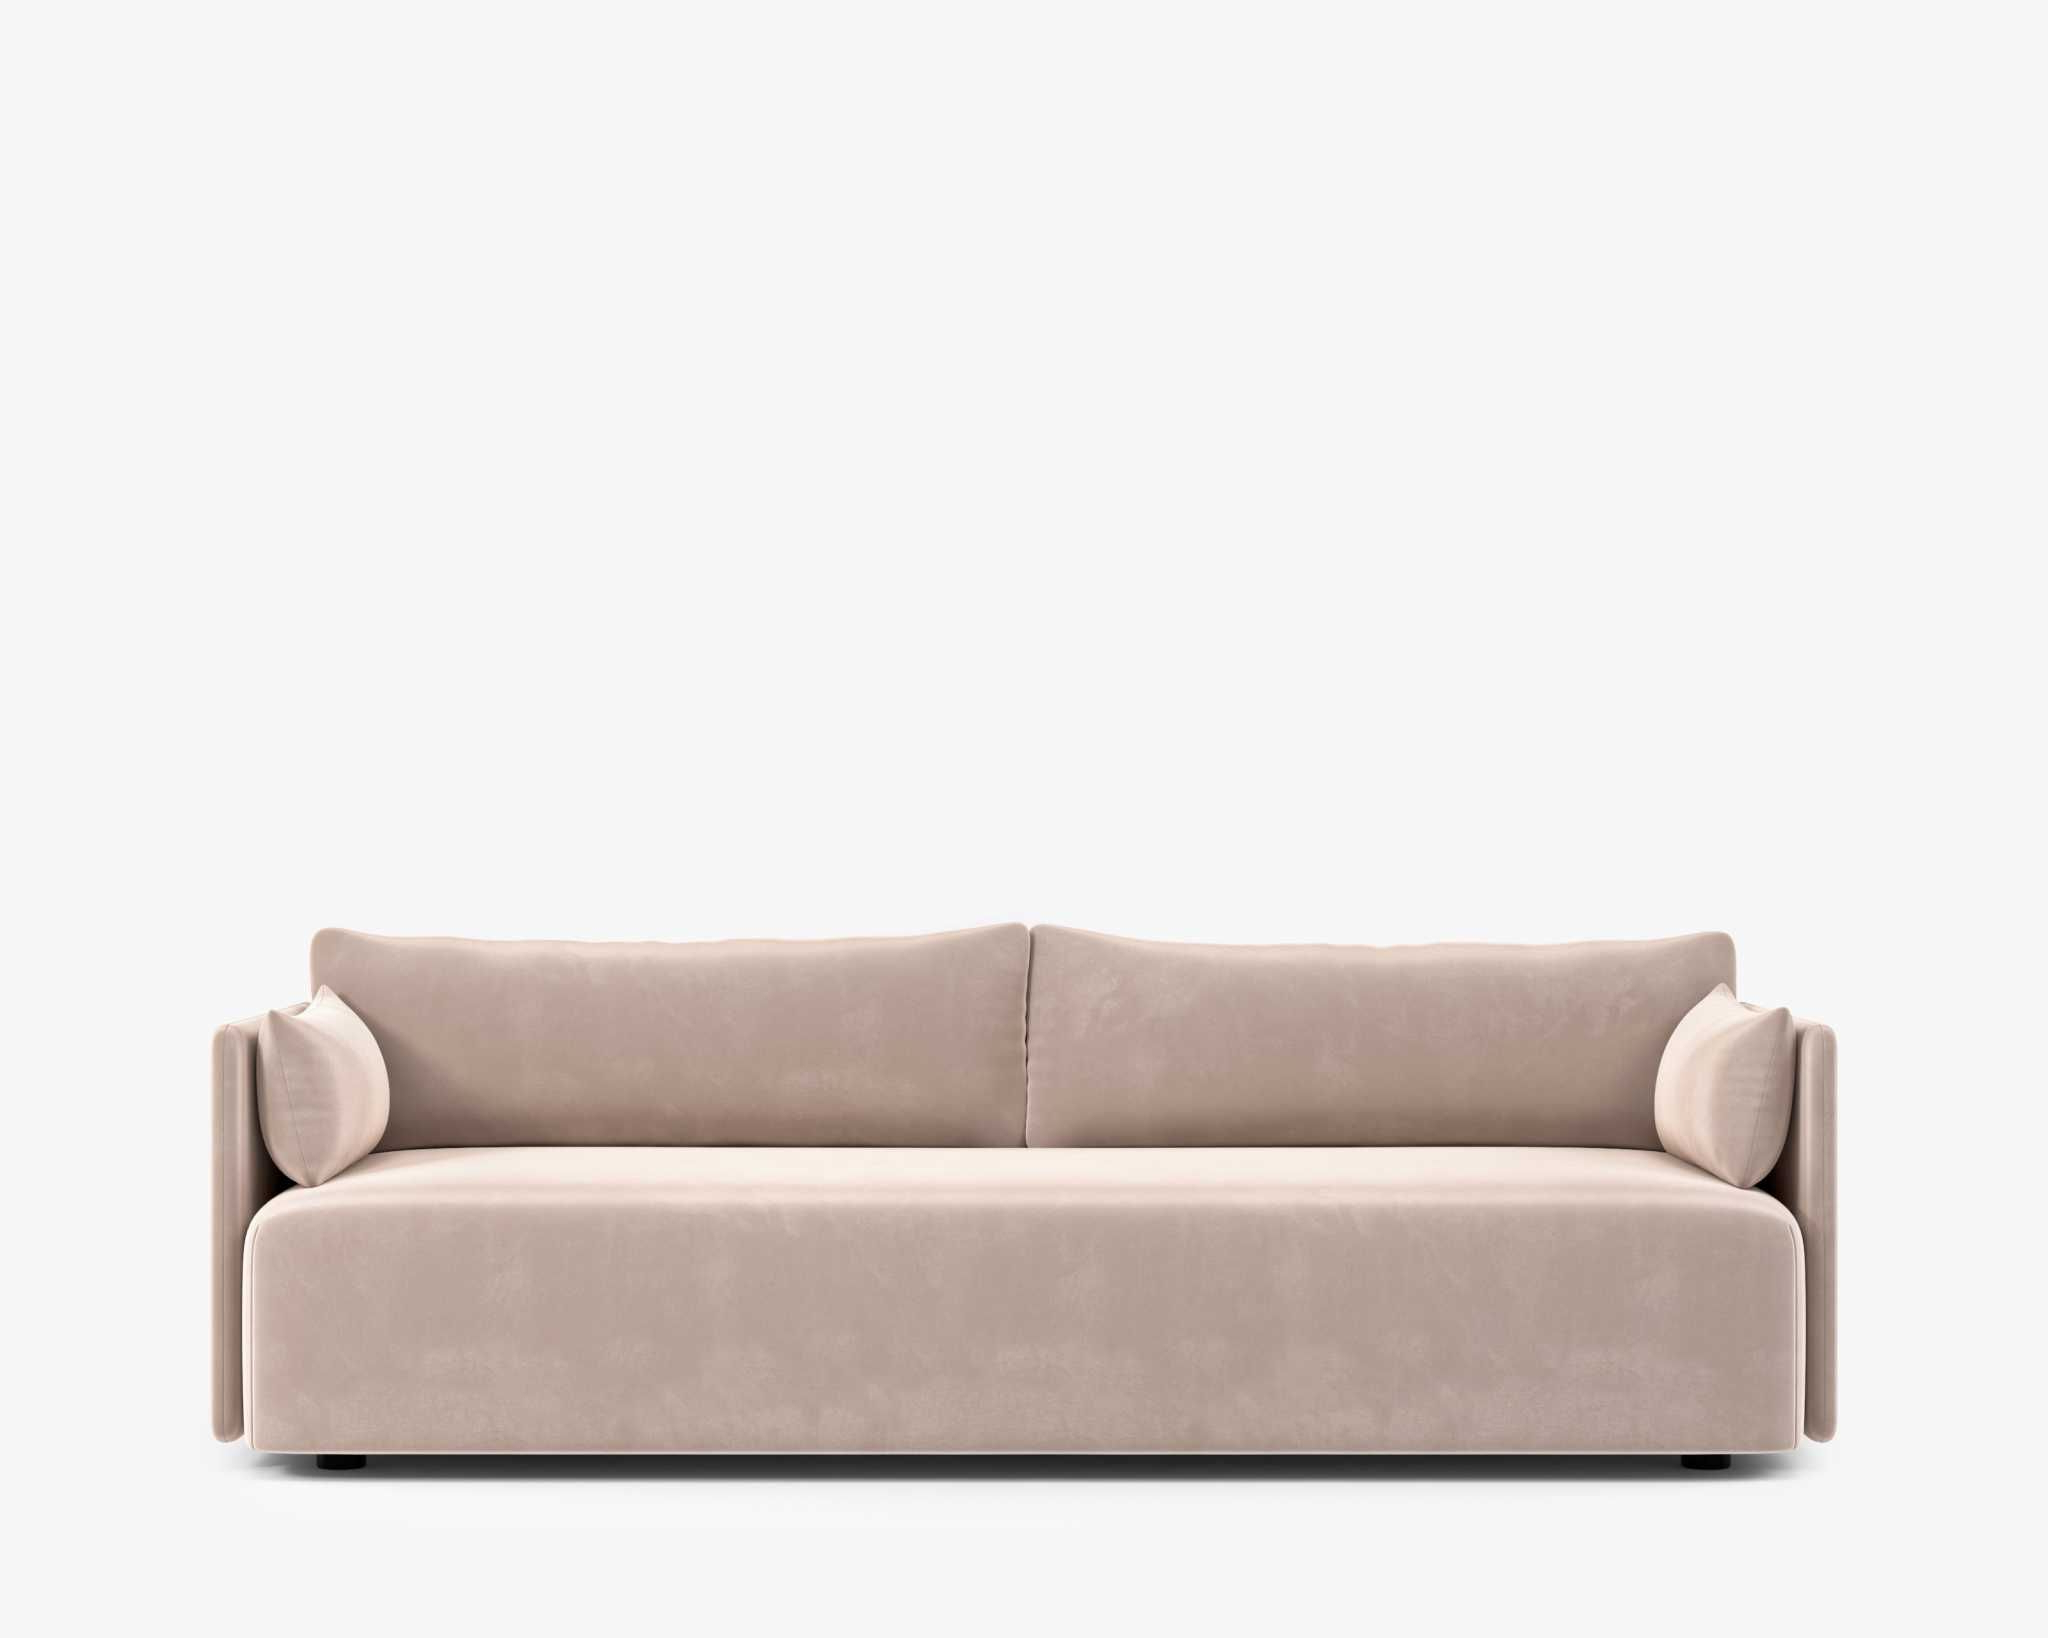 Rove Concepts, Sofa Within Famous Annette Navy Sofas (View 5 of 20)